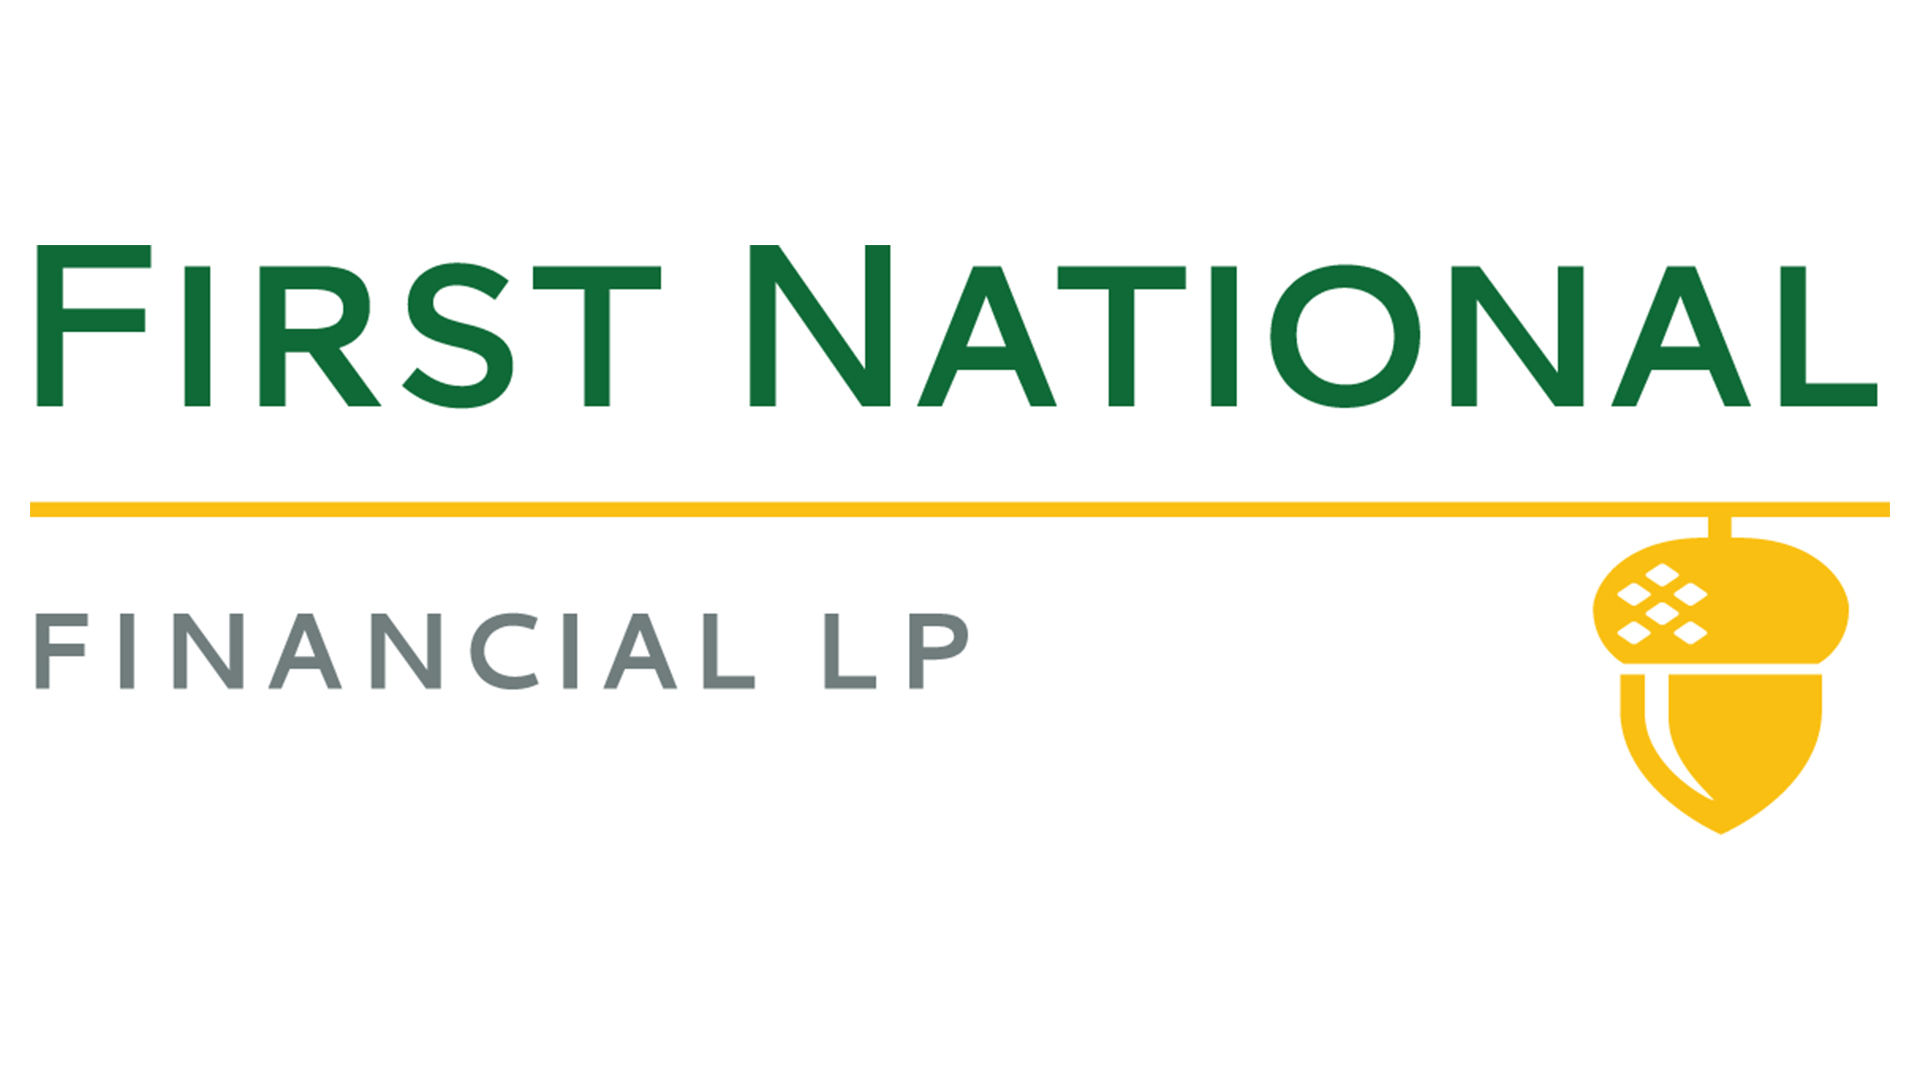 First National Financial